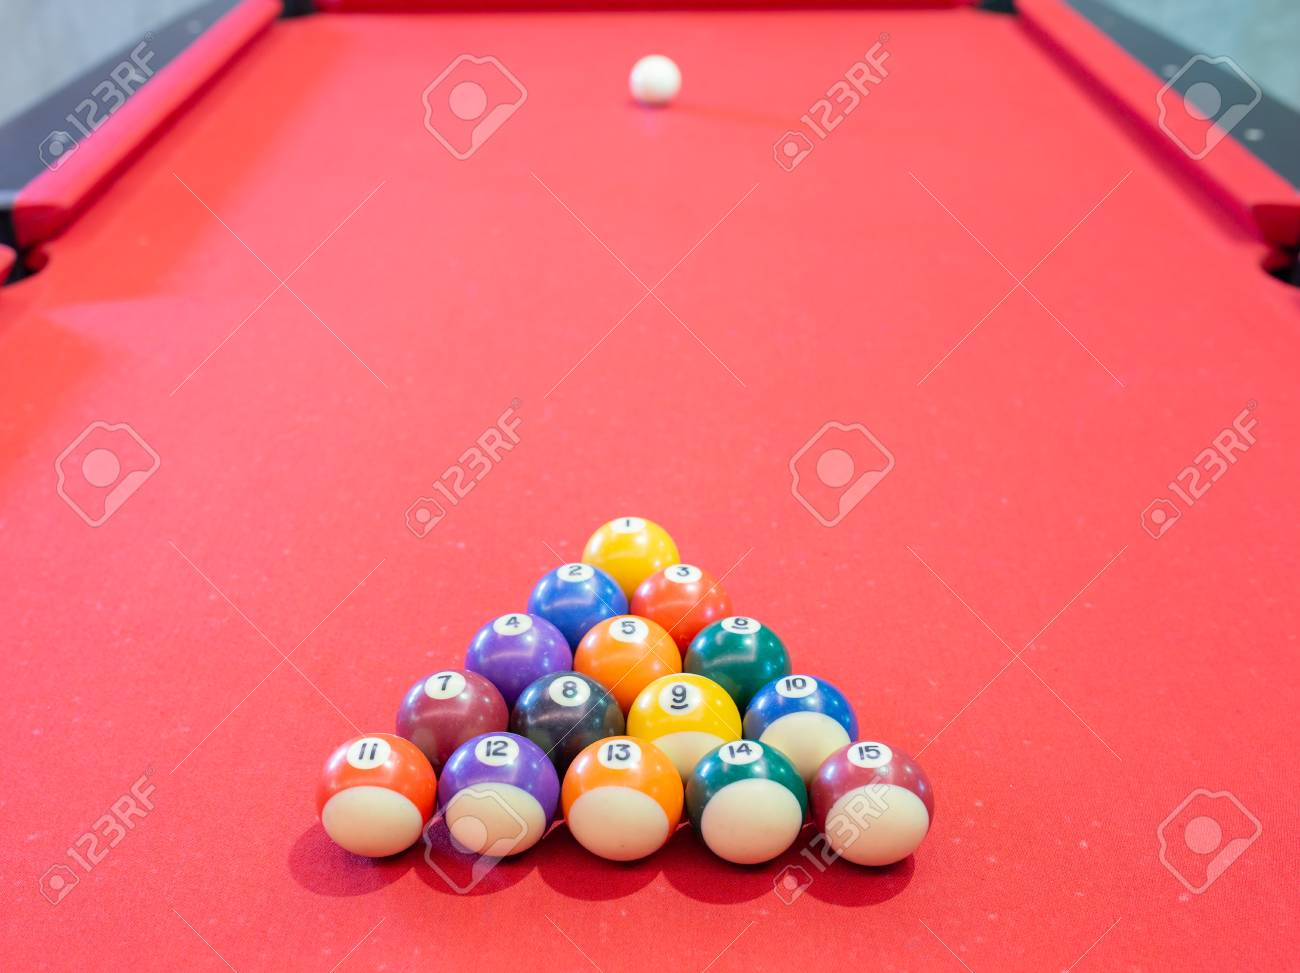 Billiard Ball On Red Table Background In Pub Bar Room Concept 1300x973